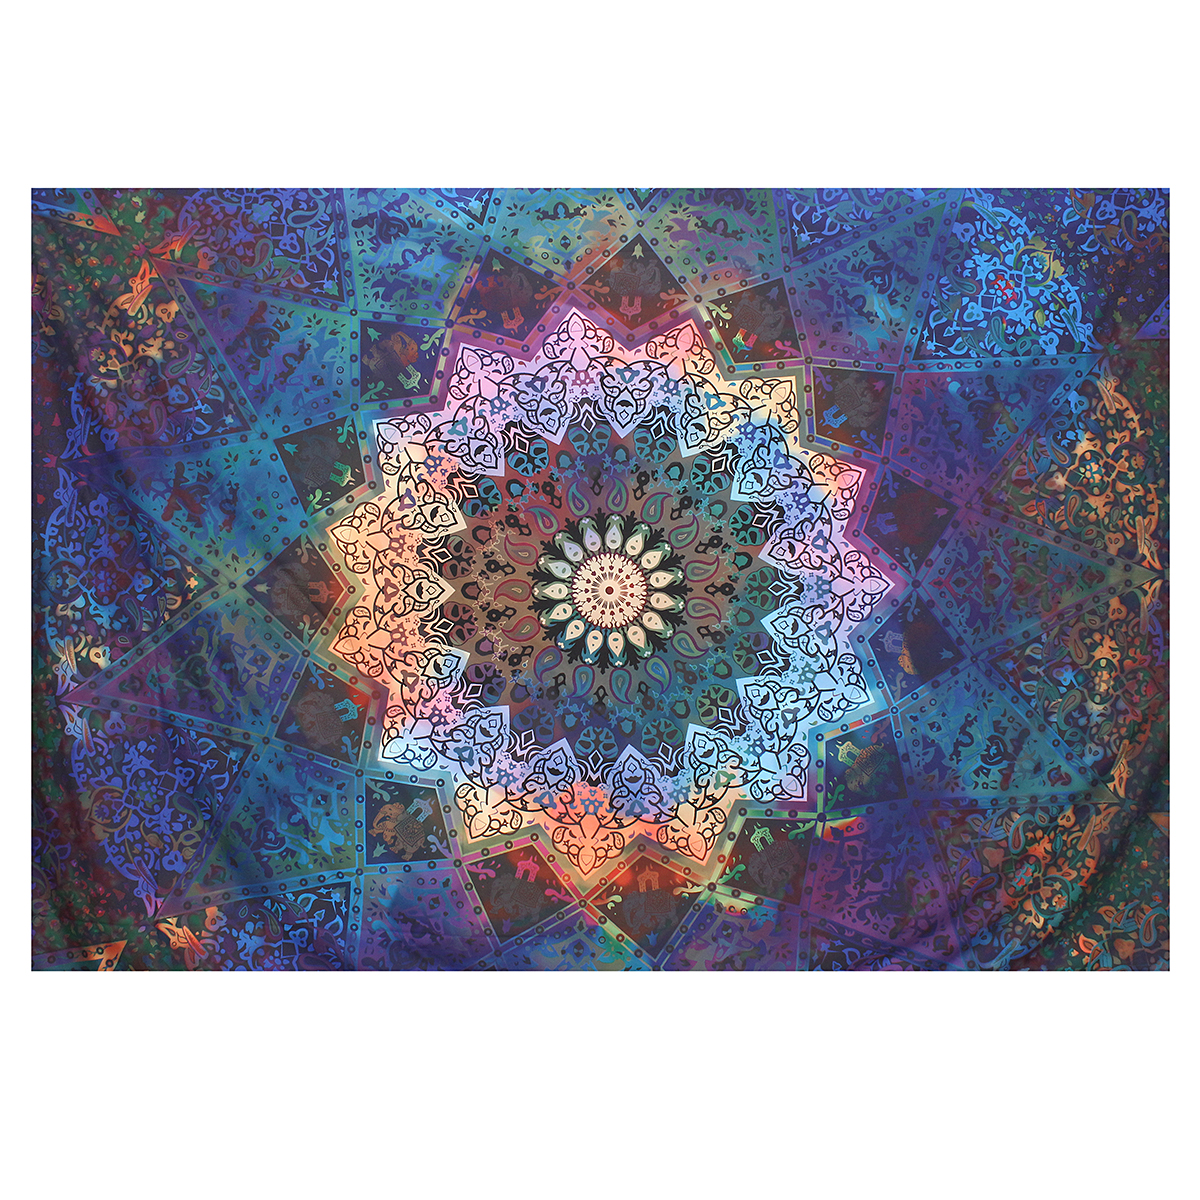 Wandbehänge Indian Skull Tapestry Wall Hanging Mandala Hippie Bedspread Throw Cover Blanket Möbel Wohnen Blowmind Com Br